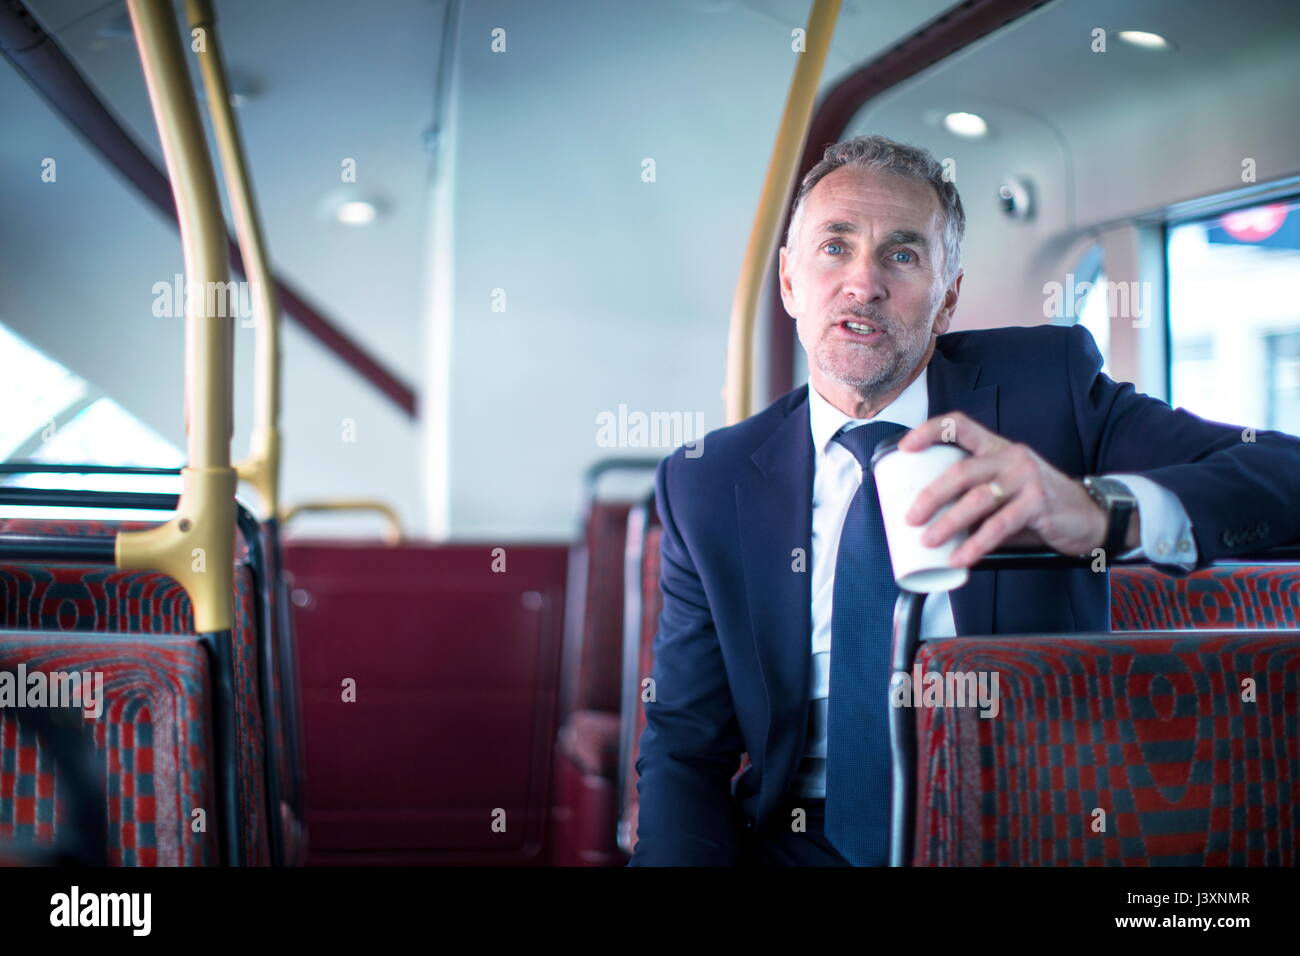 Businessman with takeaway coffee on double decker bus - Stock Image